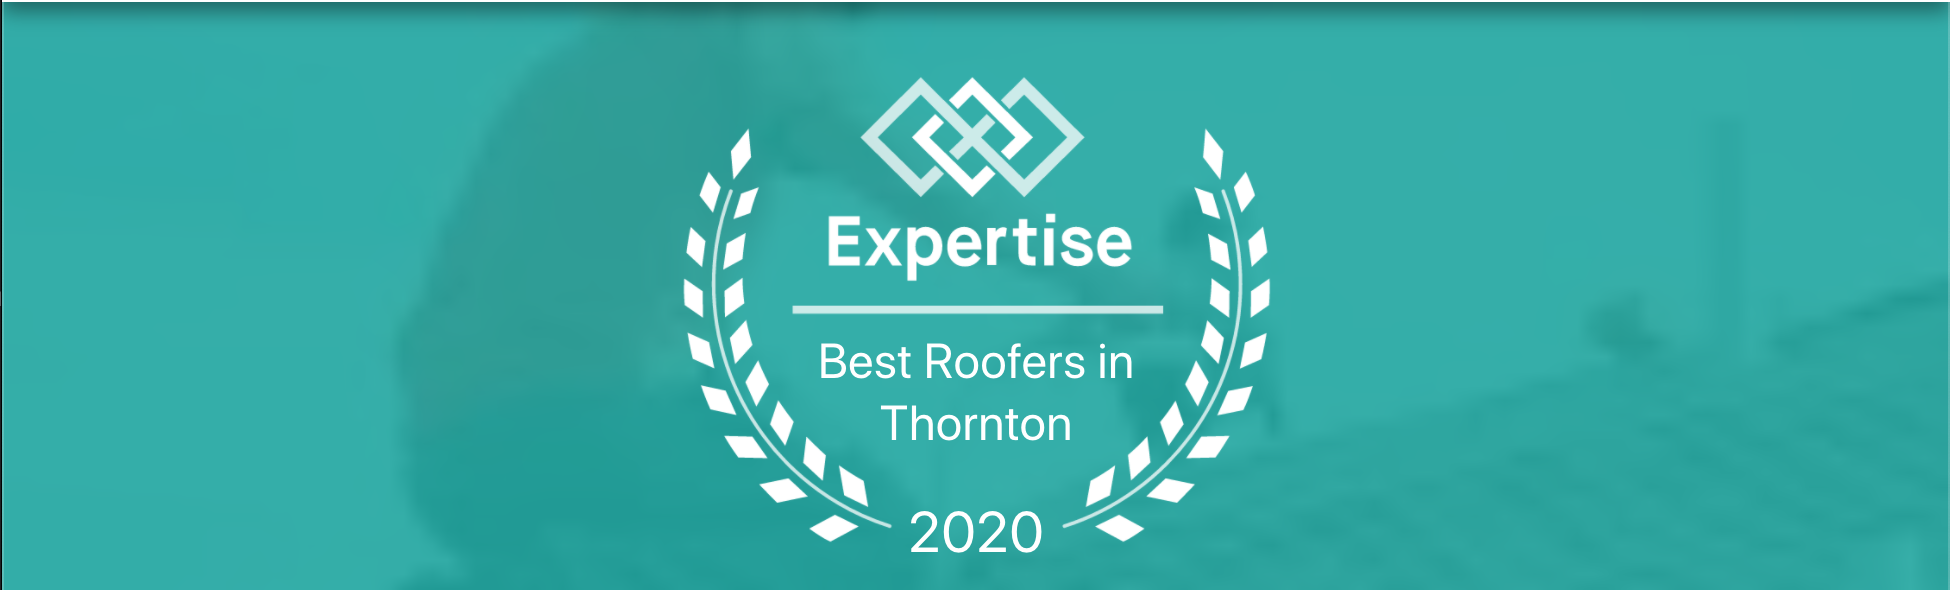 Best Roofer in Thornton